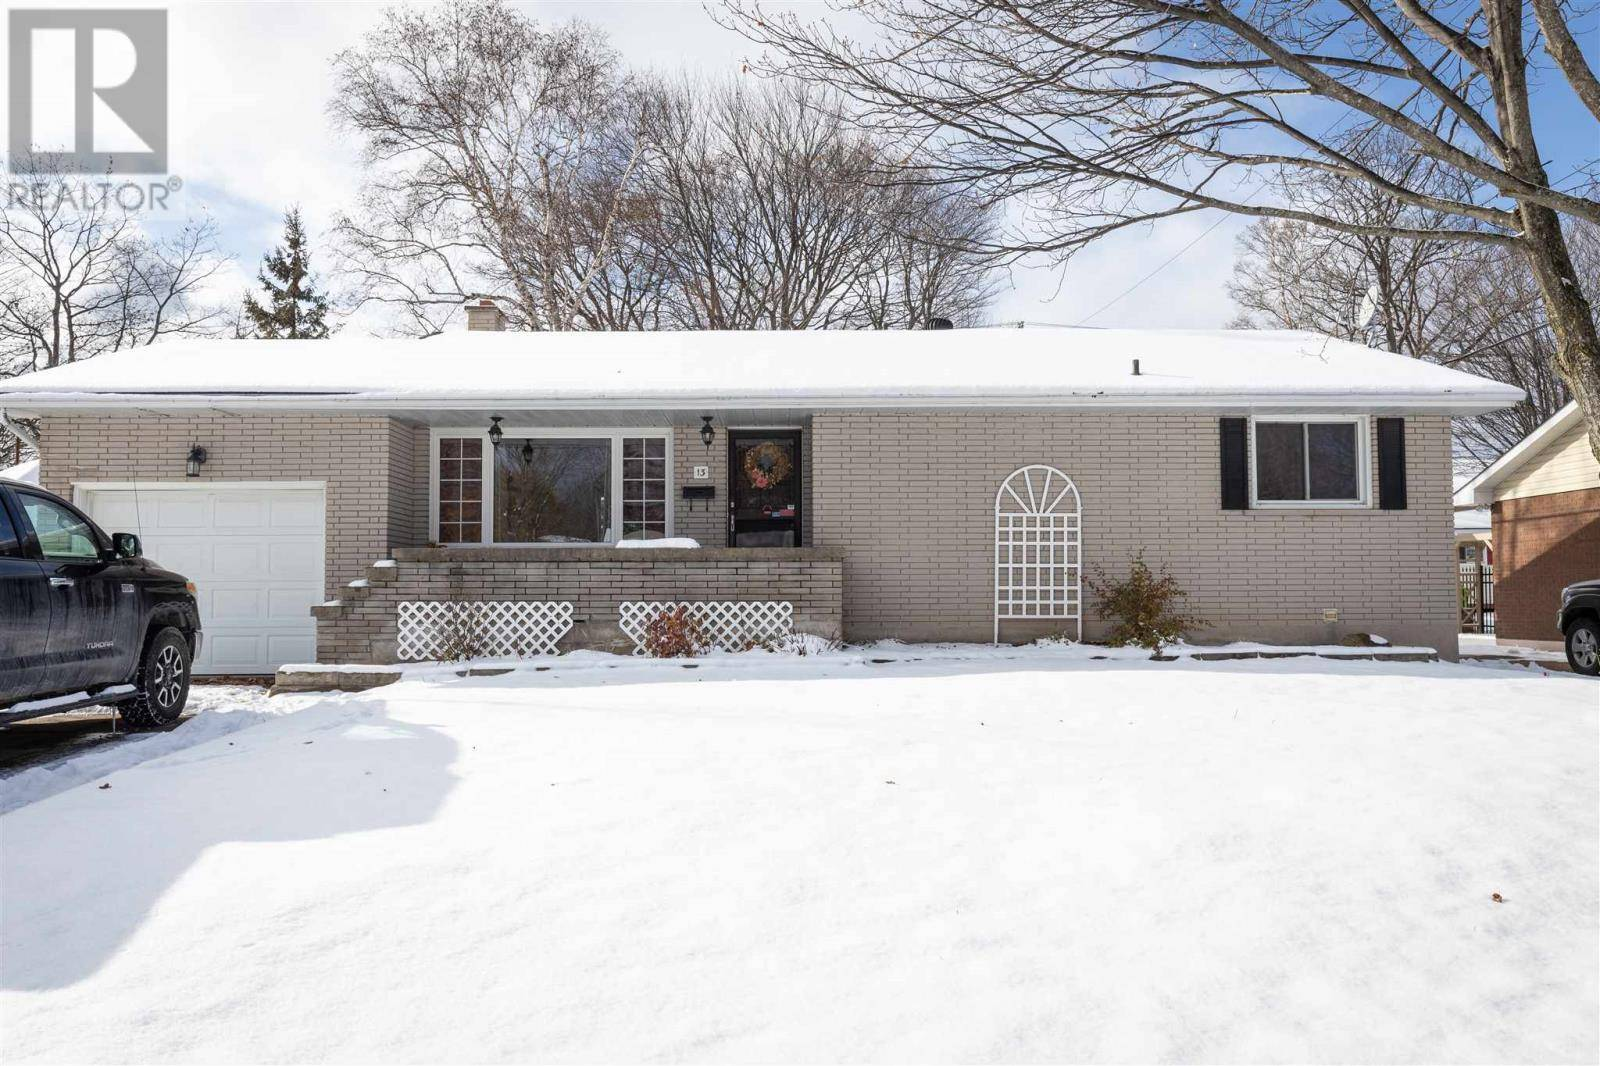 House for sale at 13 Plaintree Dr Sault Ste Marie Ontario - MLS: SM127918